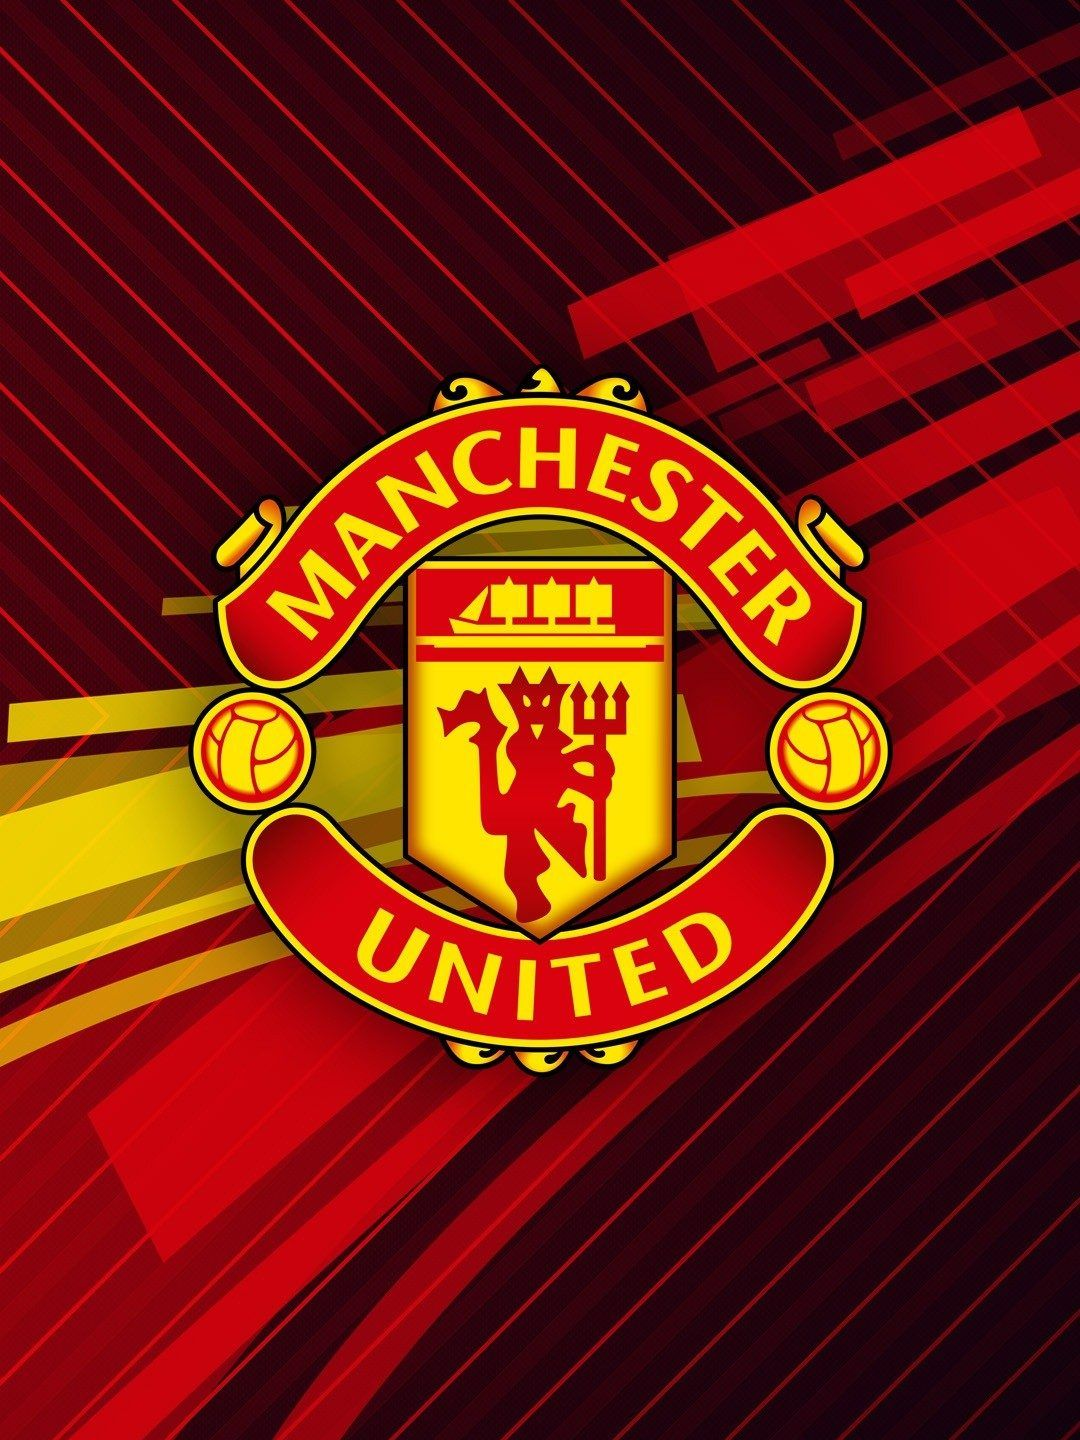 Manchester United Iphone Wallpapers Top Free Manchester United Iphone Backgrounds Wallpaperaccess